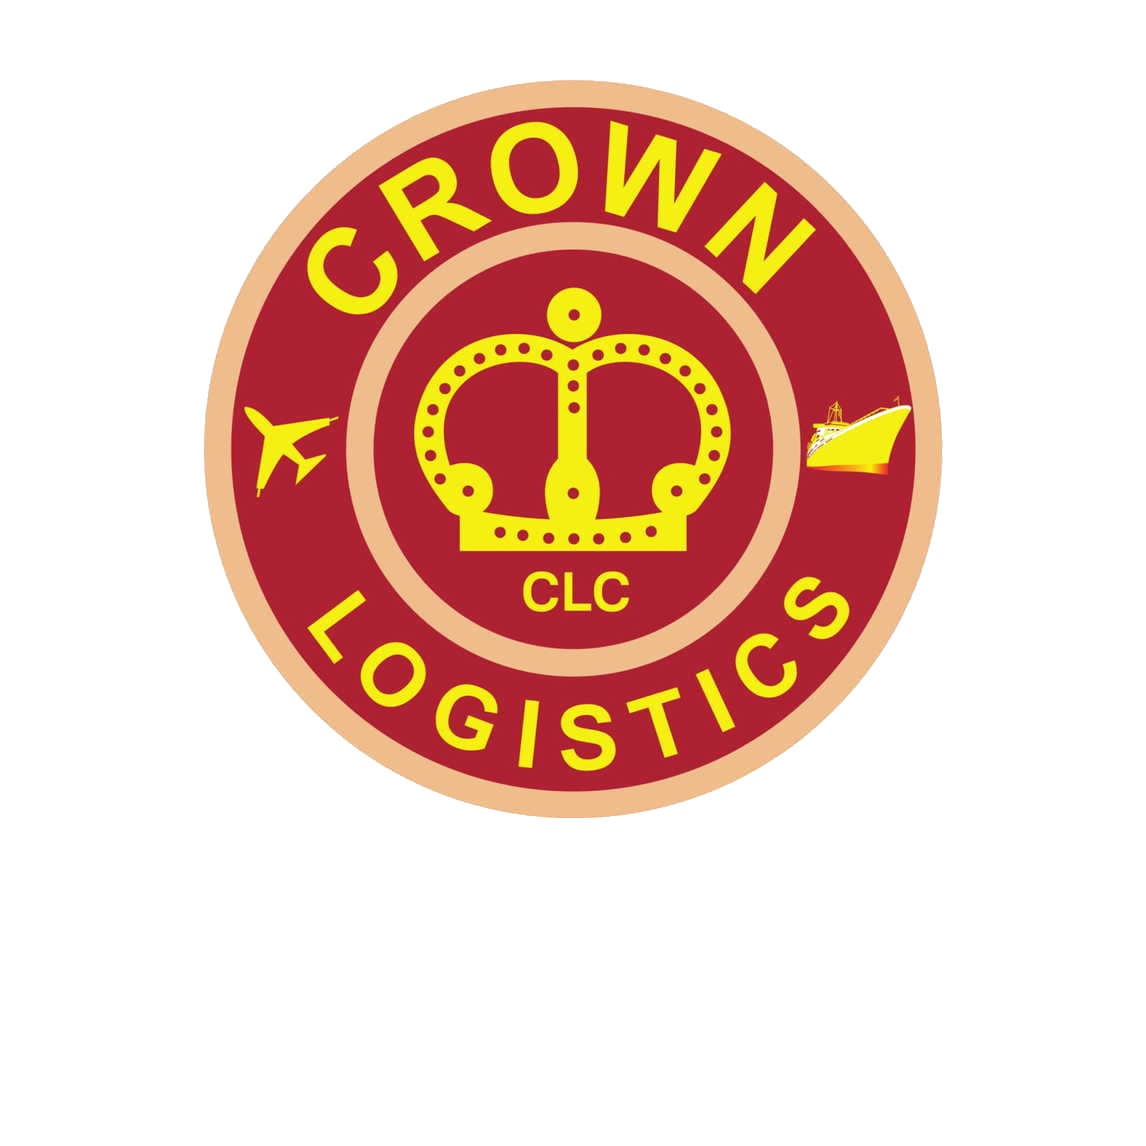 CrownLogistics